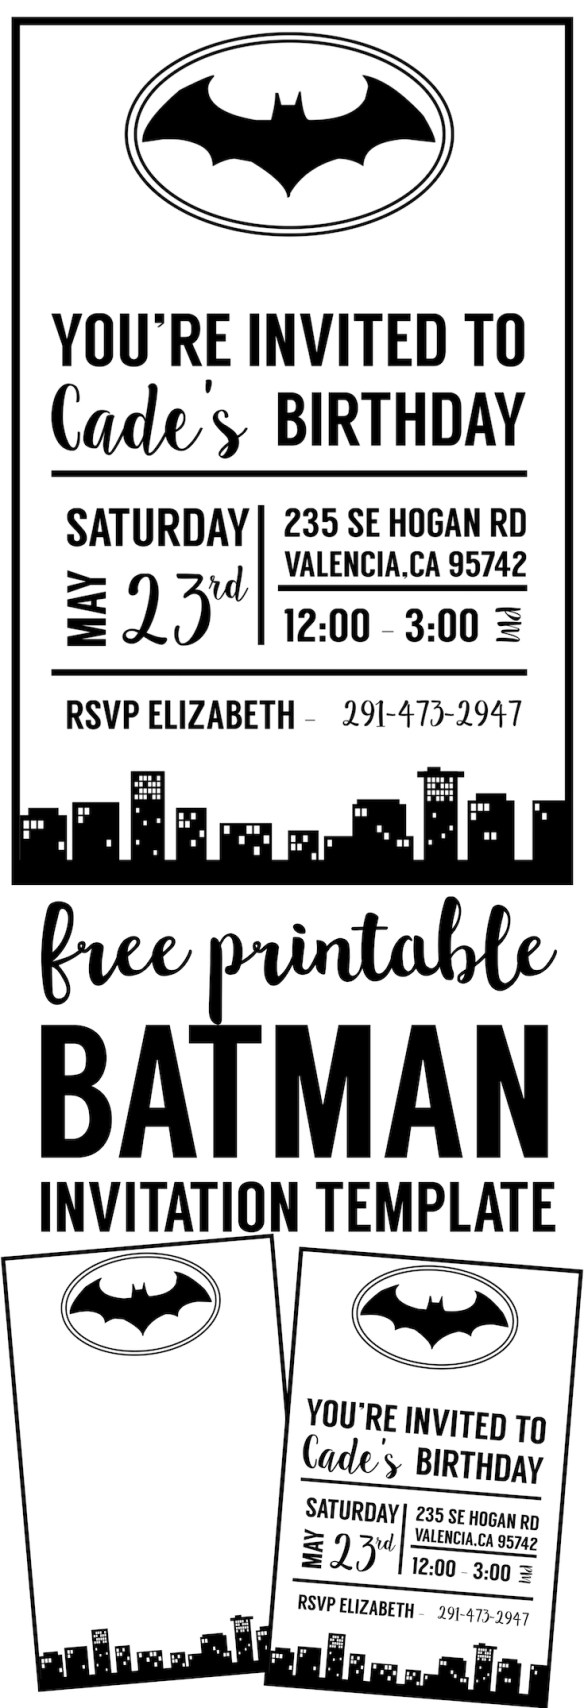 free batman invitation template printable for a batman birthday party halloween party or baby - Batman Party Invitations